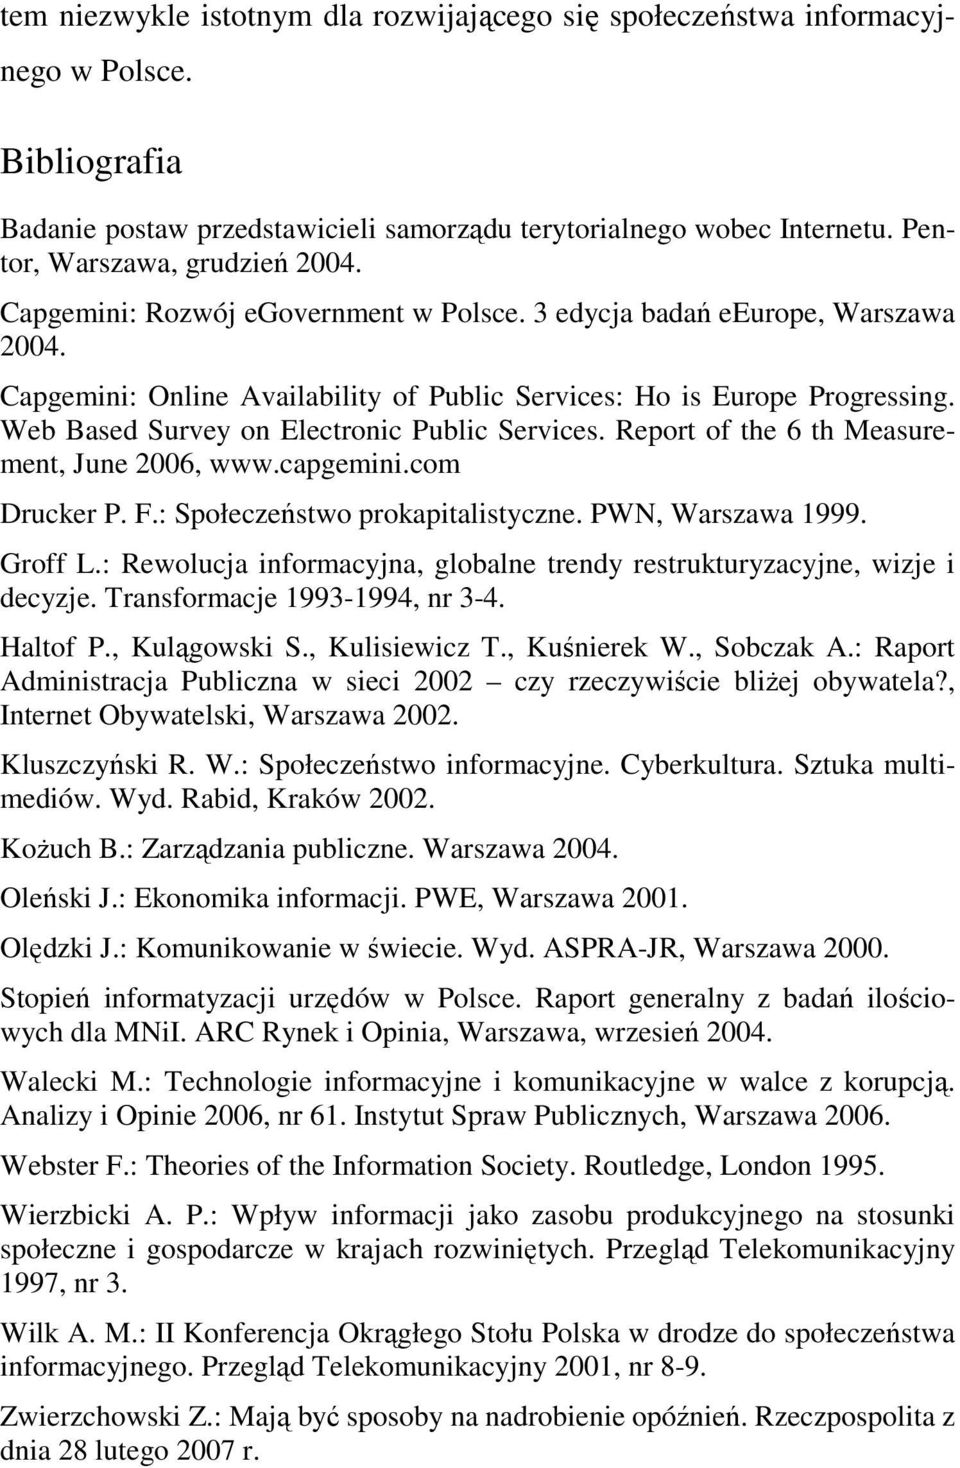 Web Based Survey on Electronic Public Services. Report of the 6 th Measurement, June 2006, www.capgemini.com Drucker P. F.: Społeczeństwo prokapitalistyczne. PWN, Warszawa 1999. Groff L.